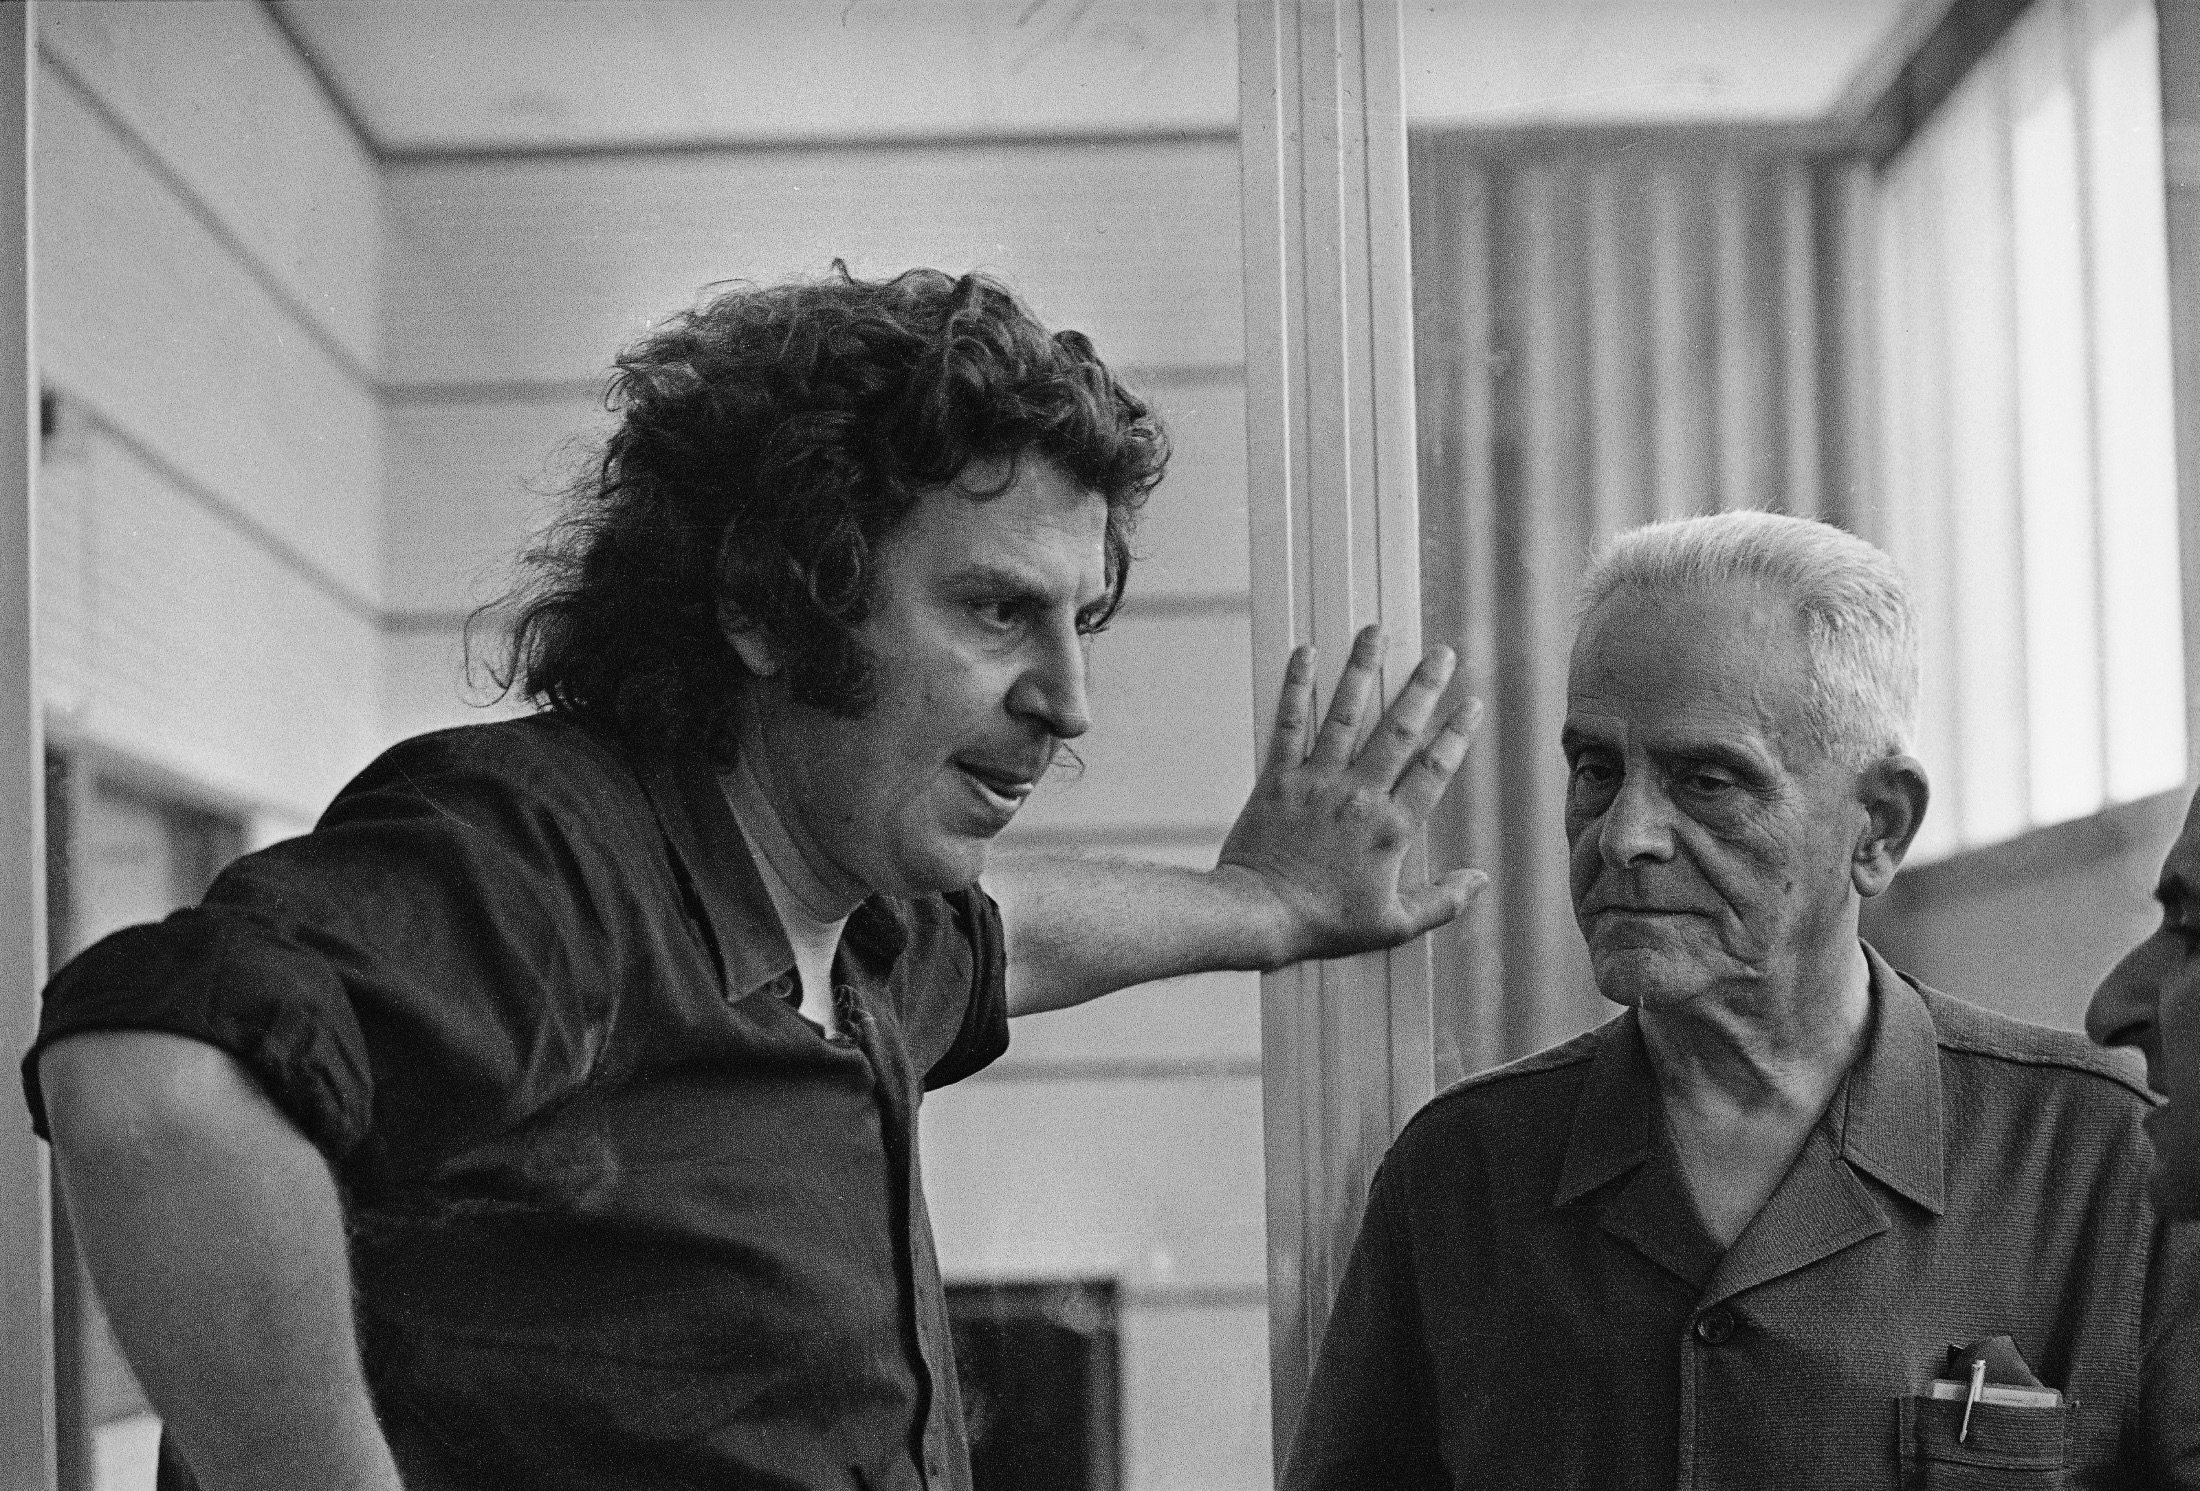 Greek composer Mikis Theodorakis (L), and his father Giorgios are pictured at a recording studio in Athens, Greece, Aug. 21, 1974. (AP Photo)